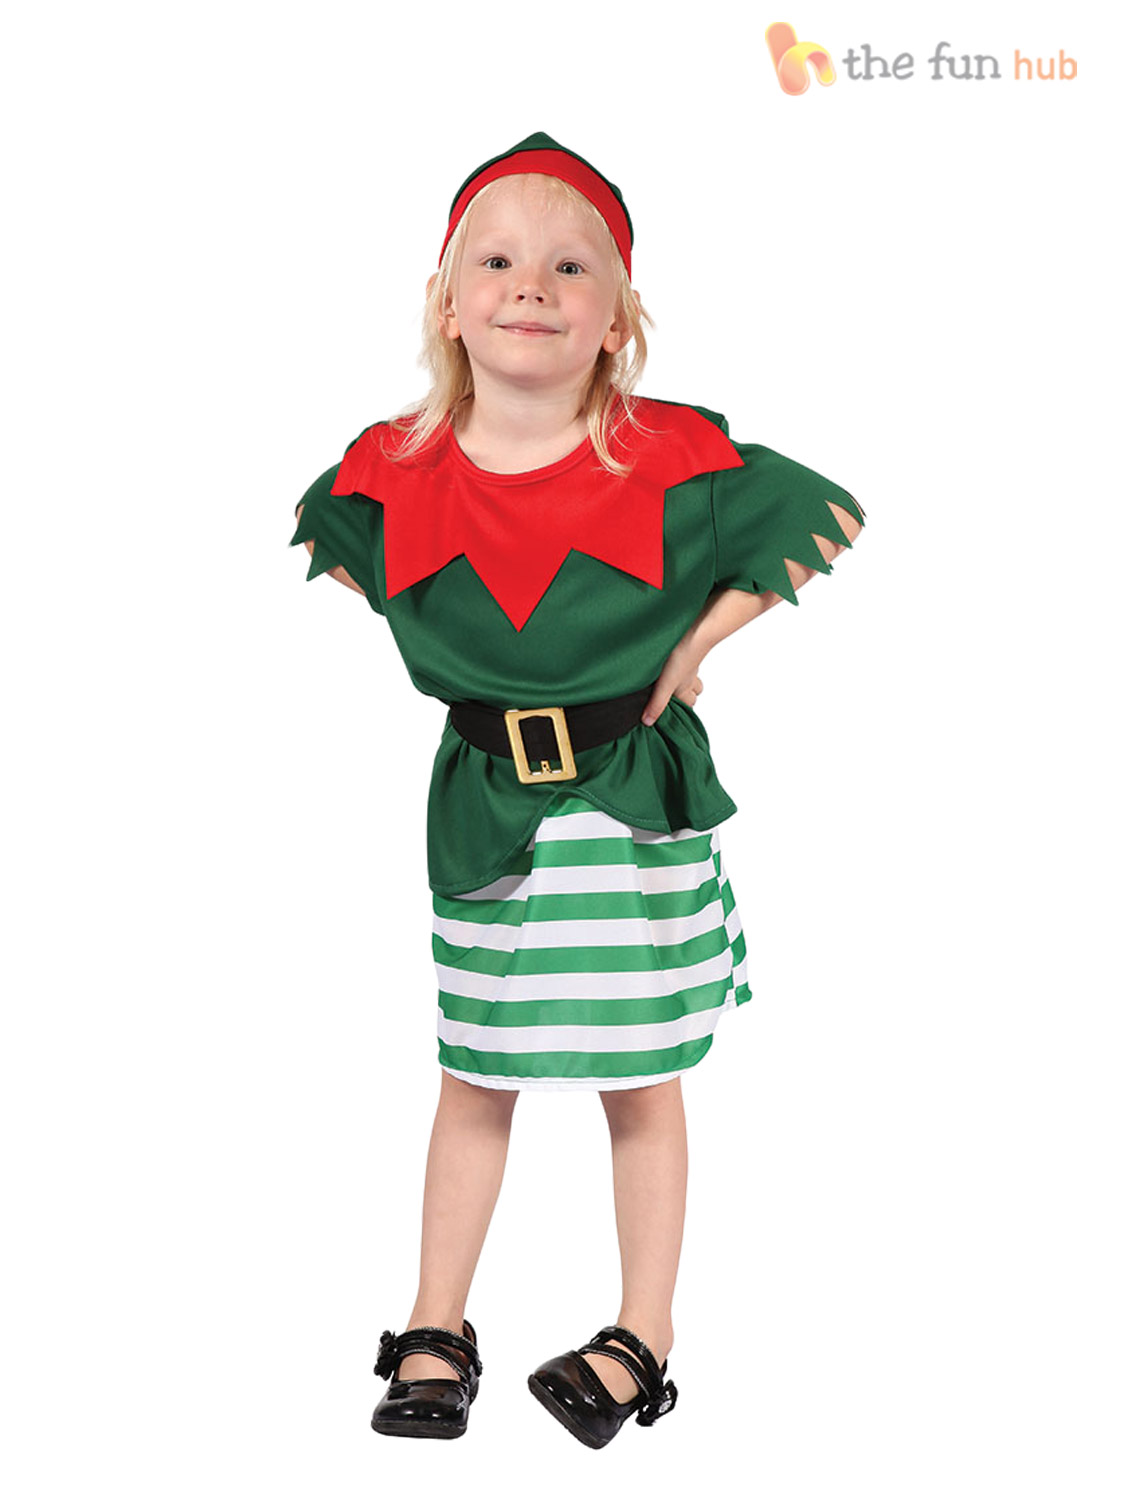 The Simply Santa Kids Costume said fits boys up to size It would barely fit a toddler. I could not get it to fit my 6 year old. Very displeased with the sizing.